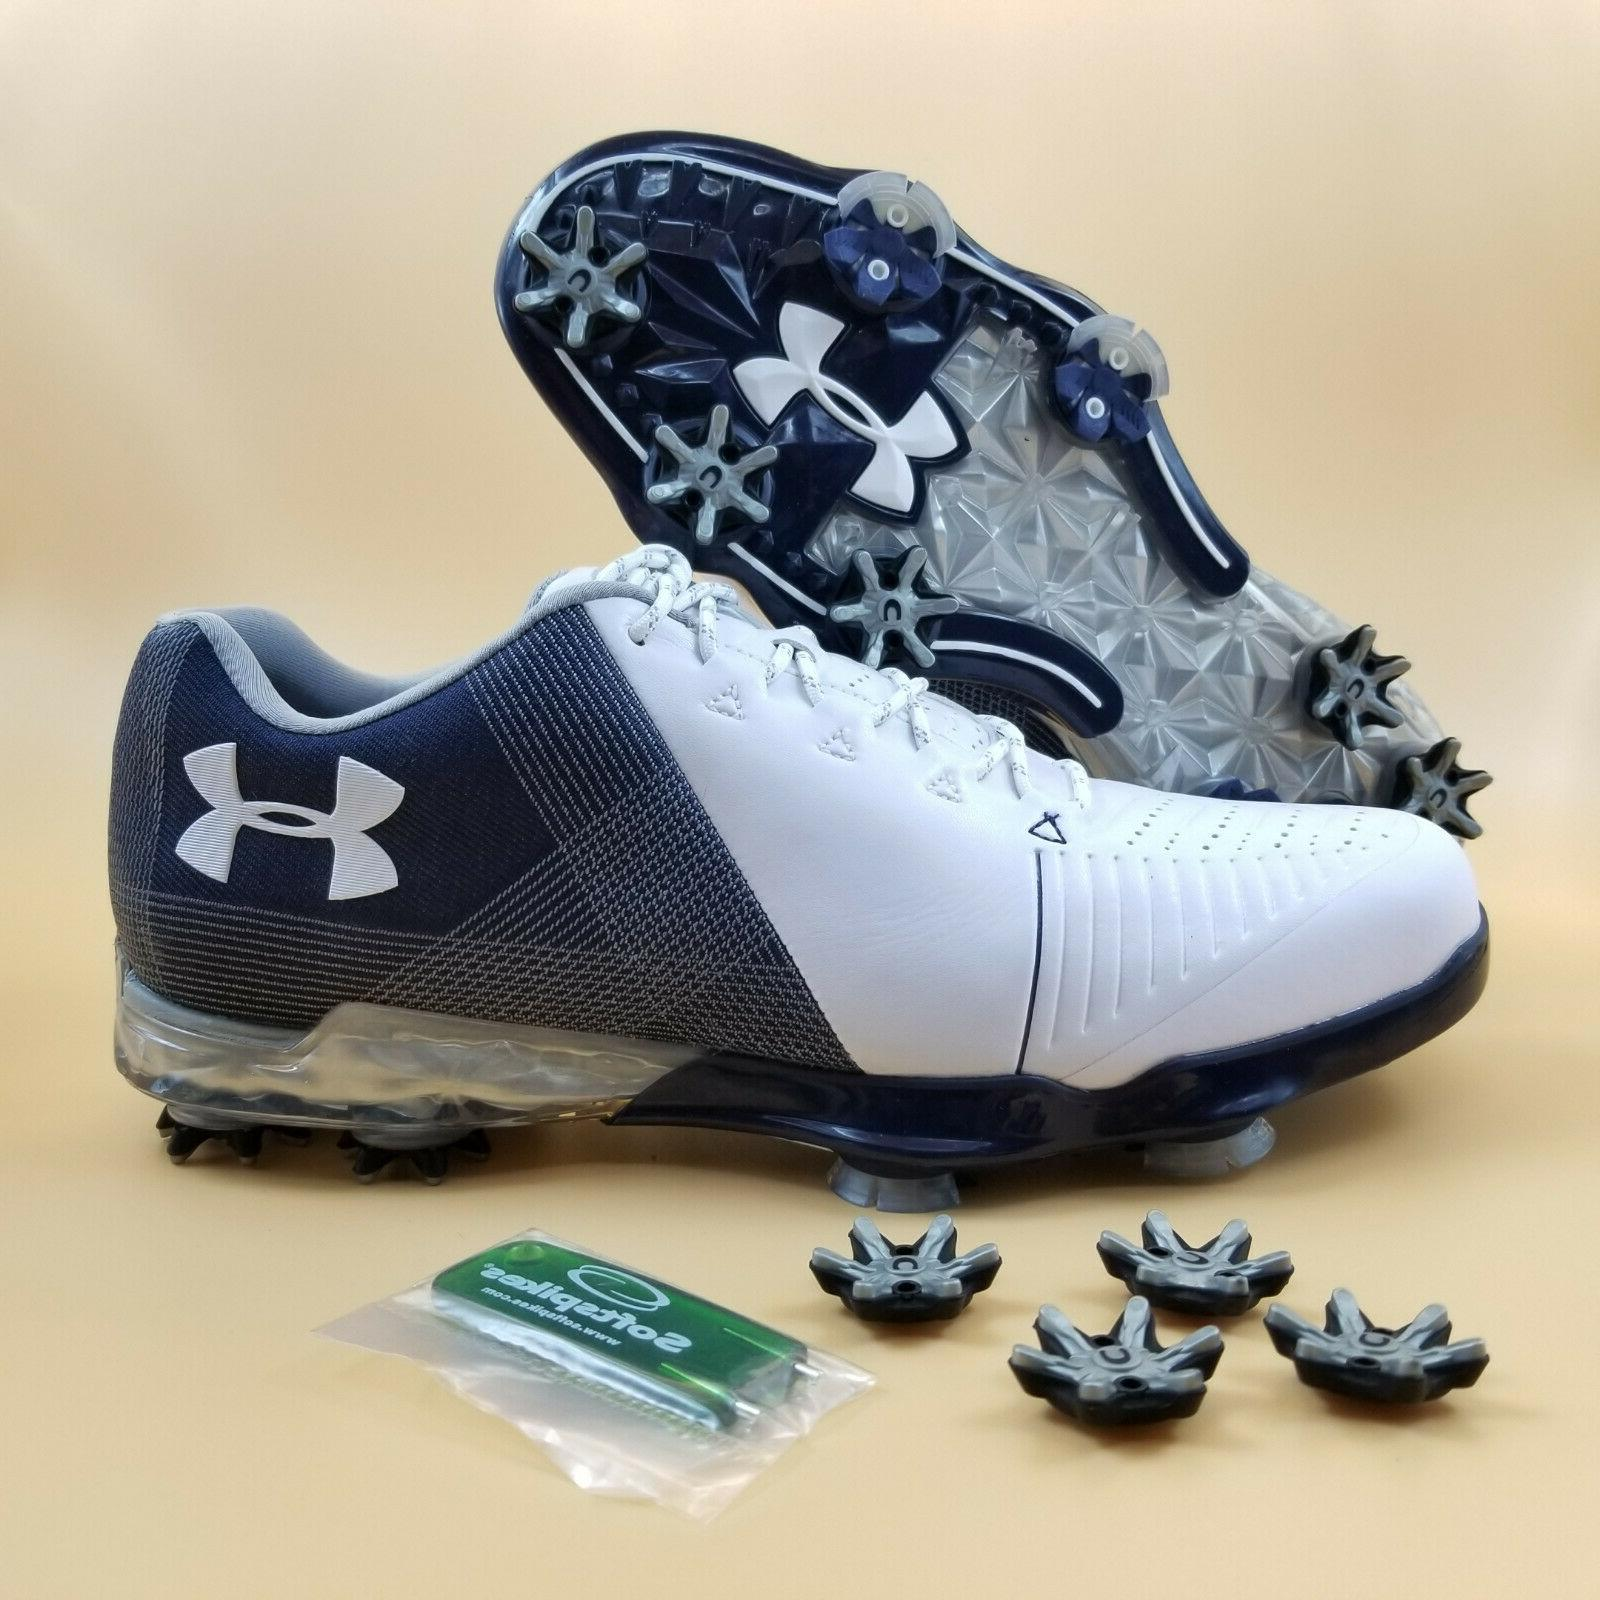 UNDER ARMOUR SPIETH 2 Men's Golf Shoes White/Blue Size 8 300